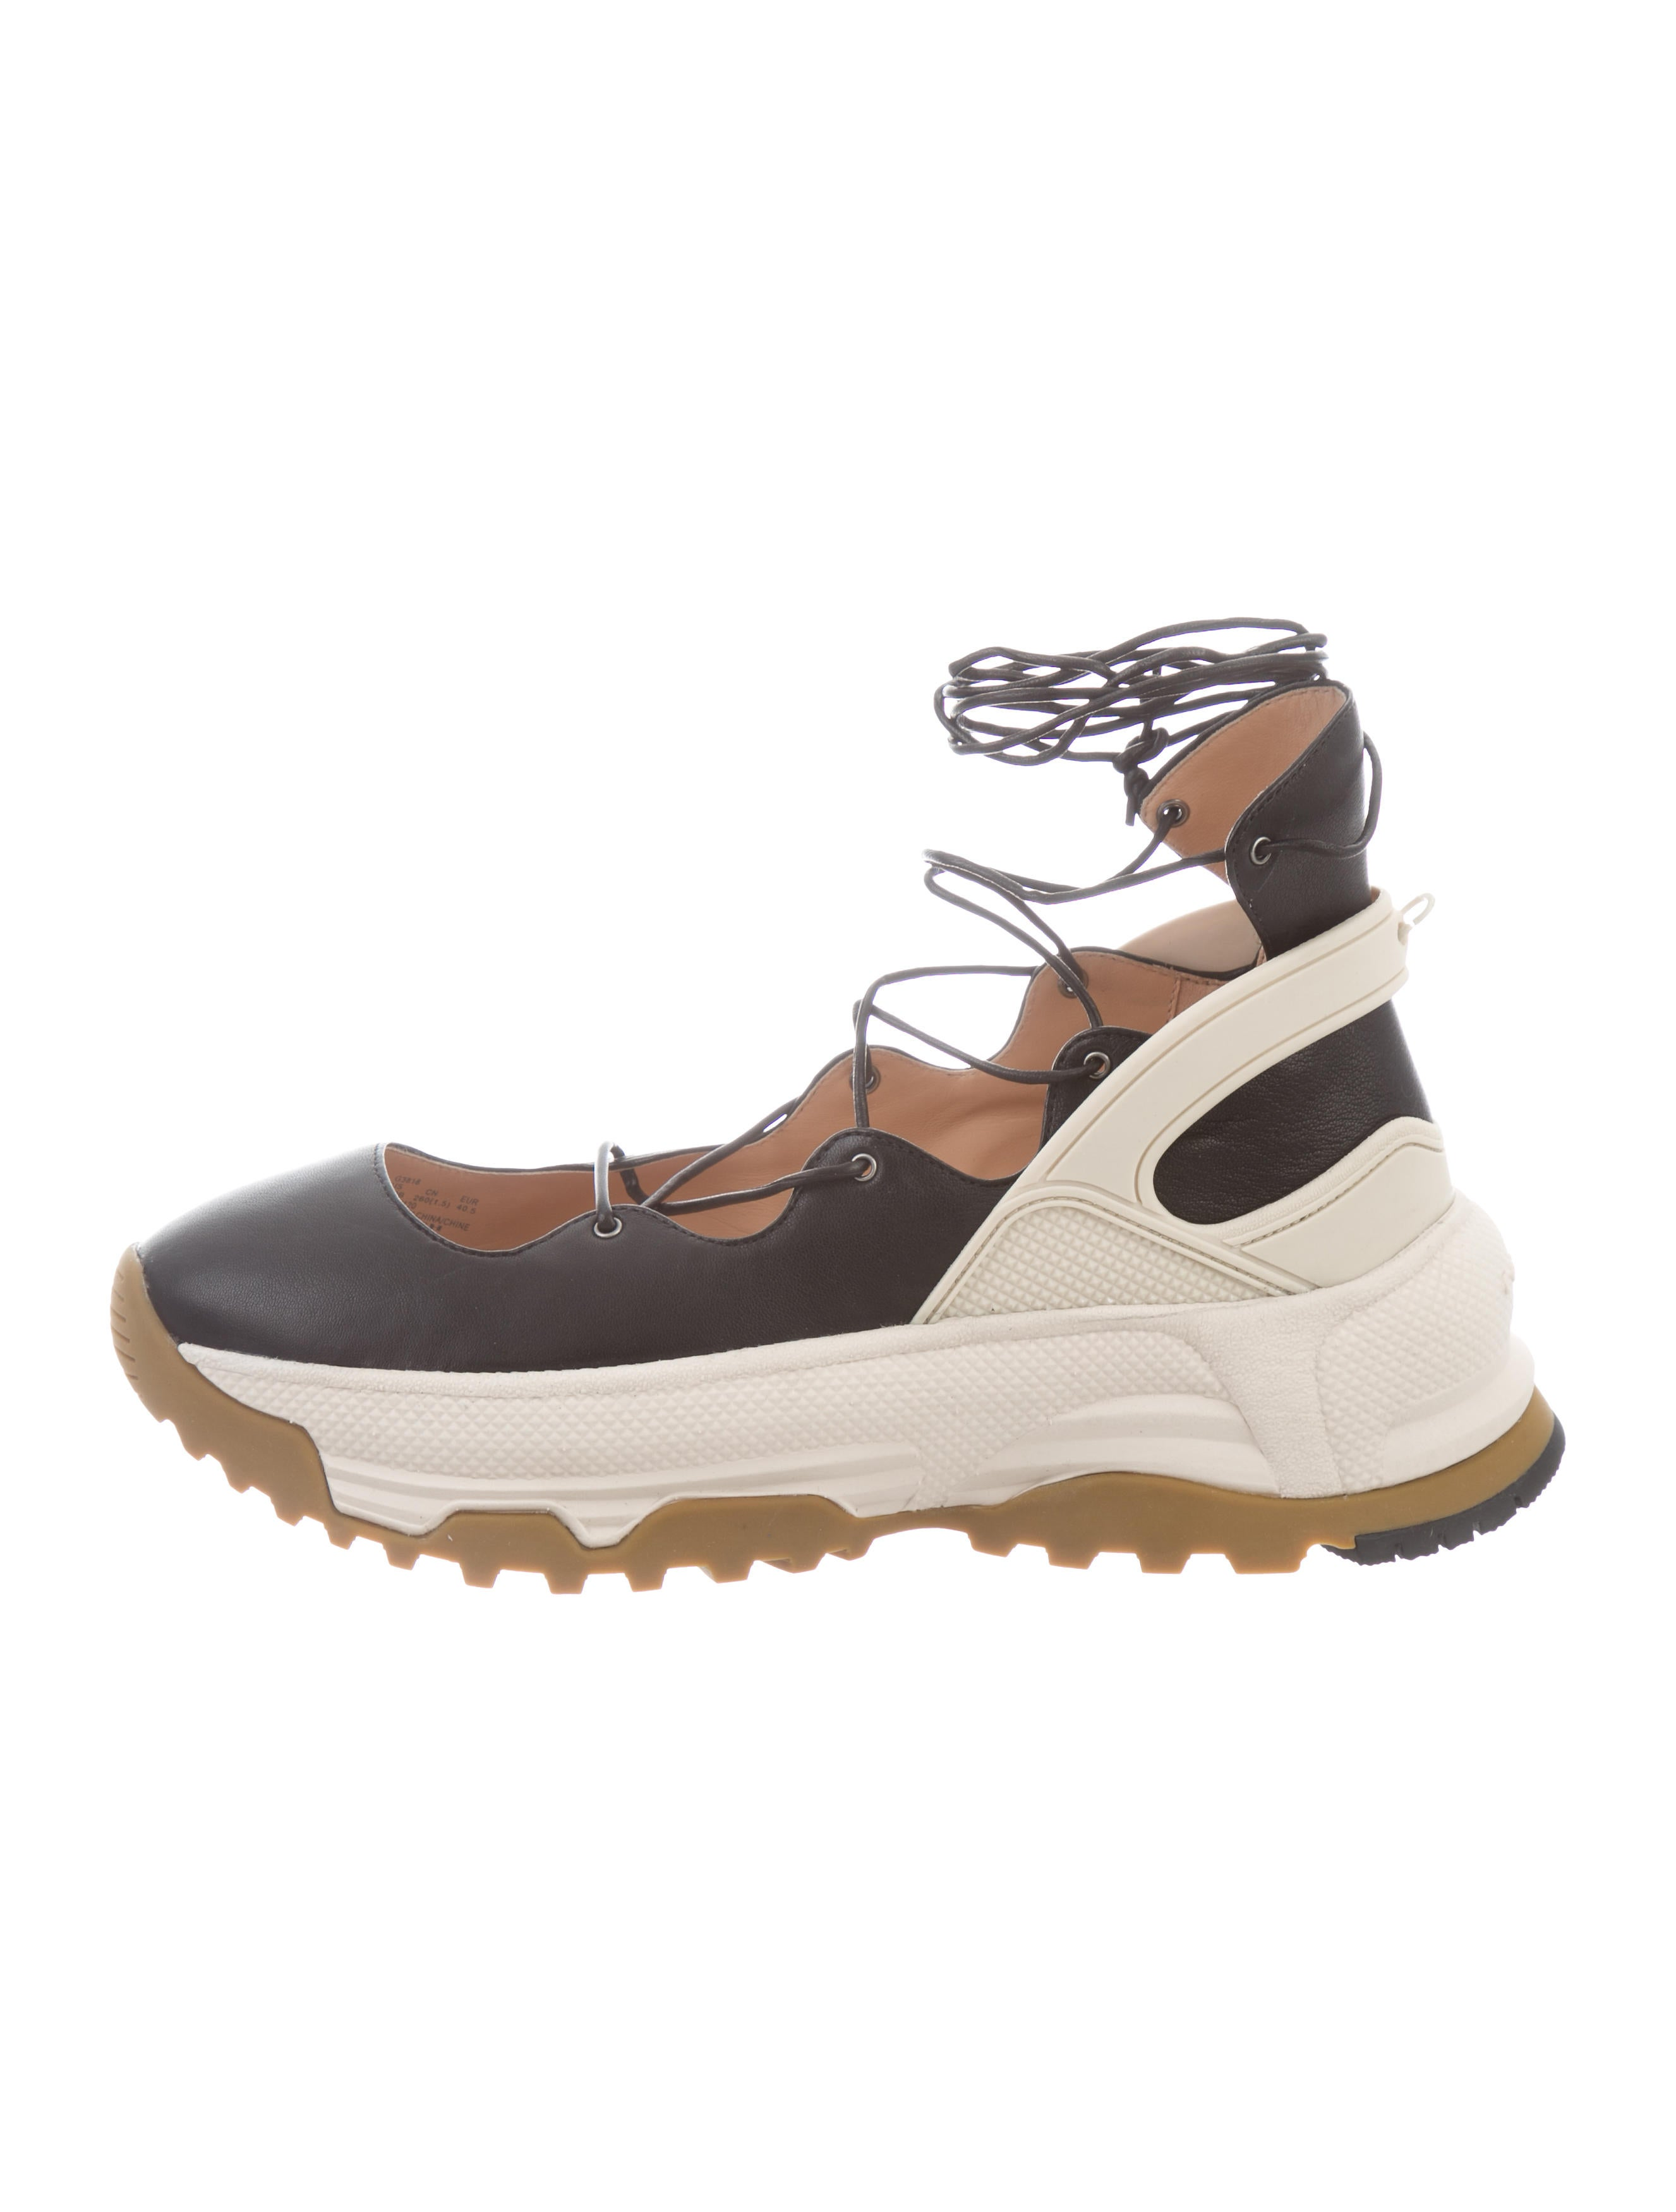 Coach Lace-Up Ballerina Sneakers w